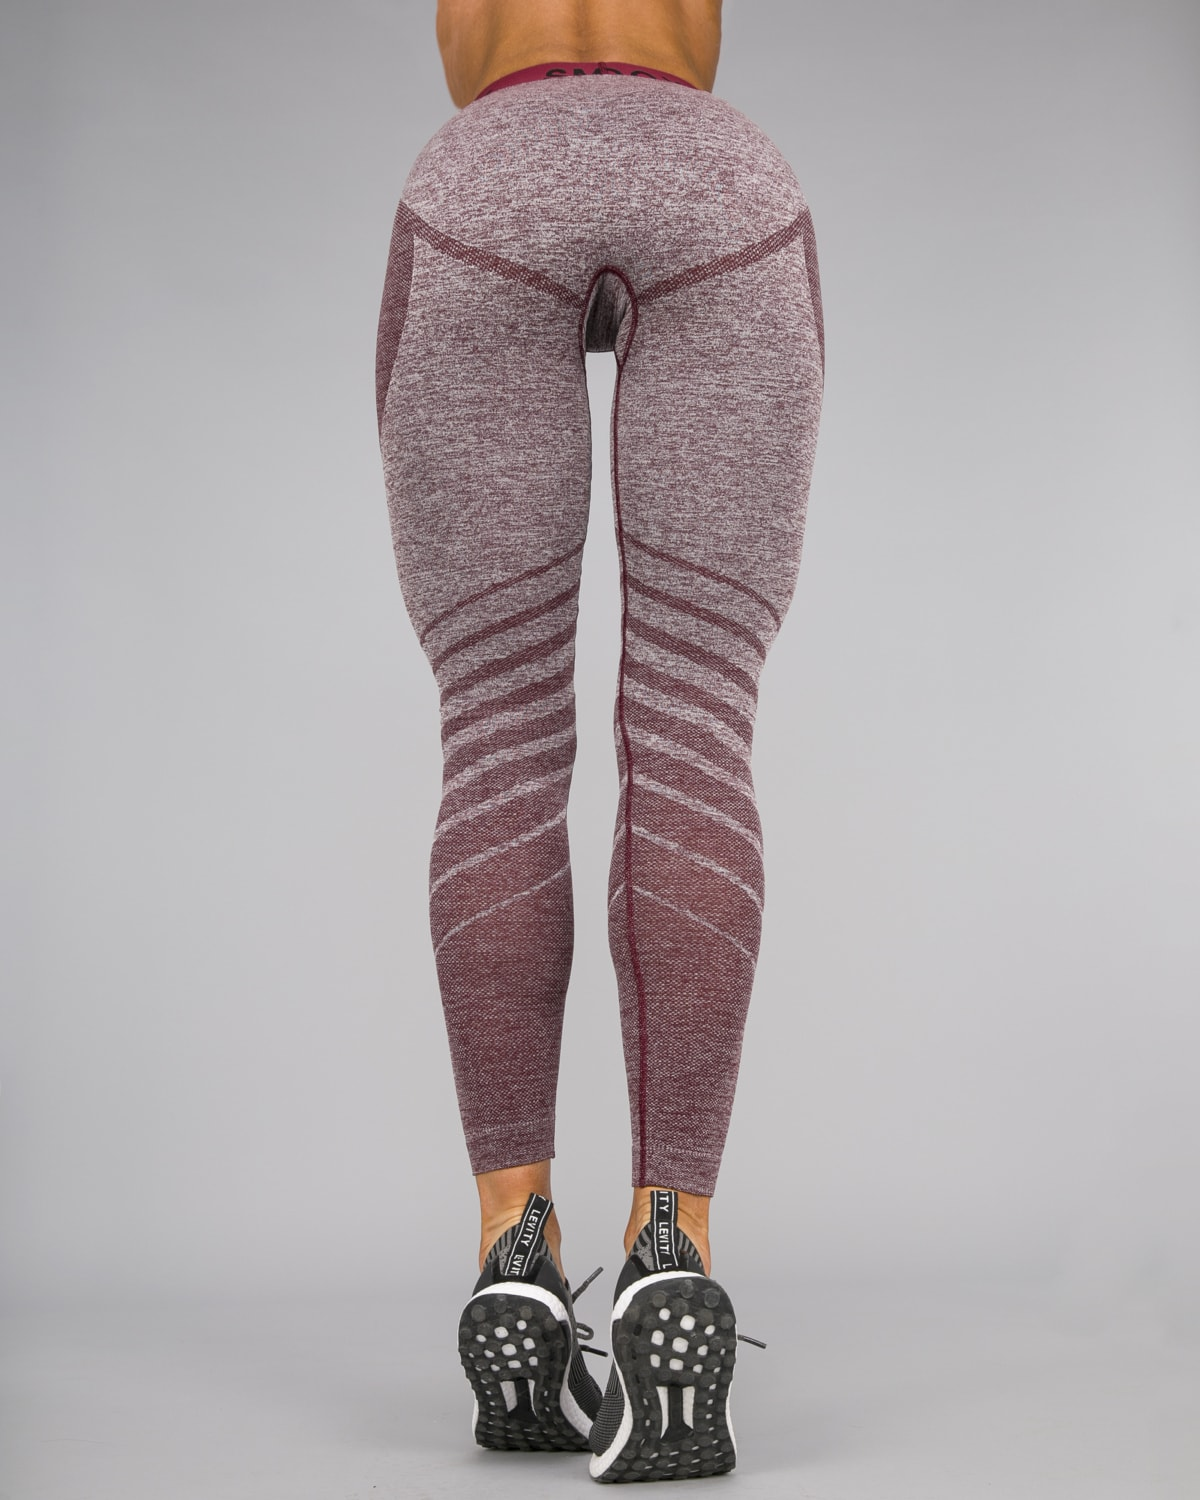 Smilodox – Vira Leggings – Bordeaux12